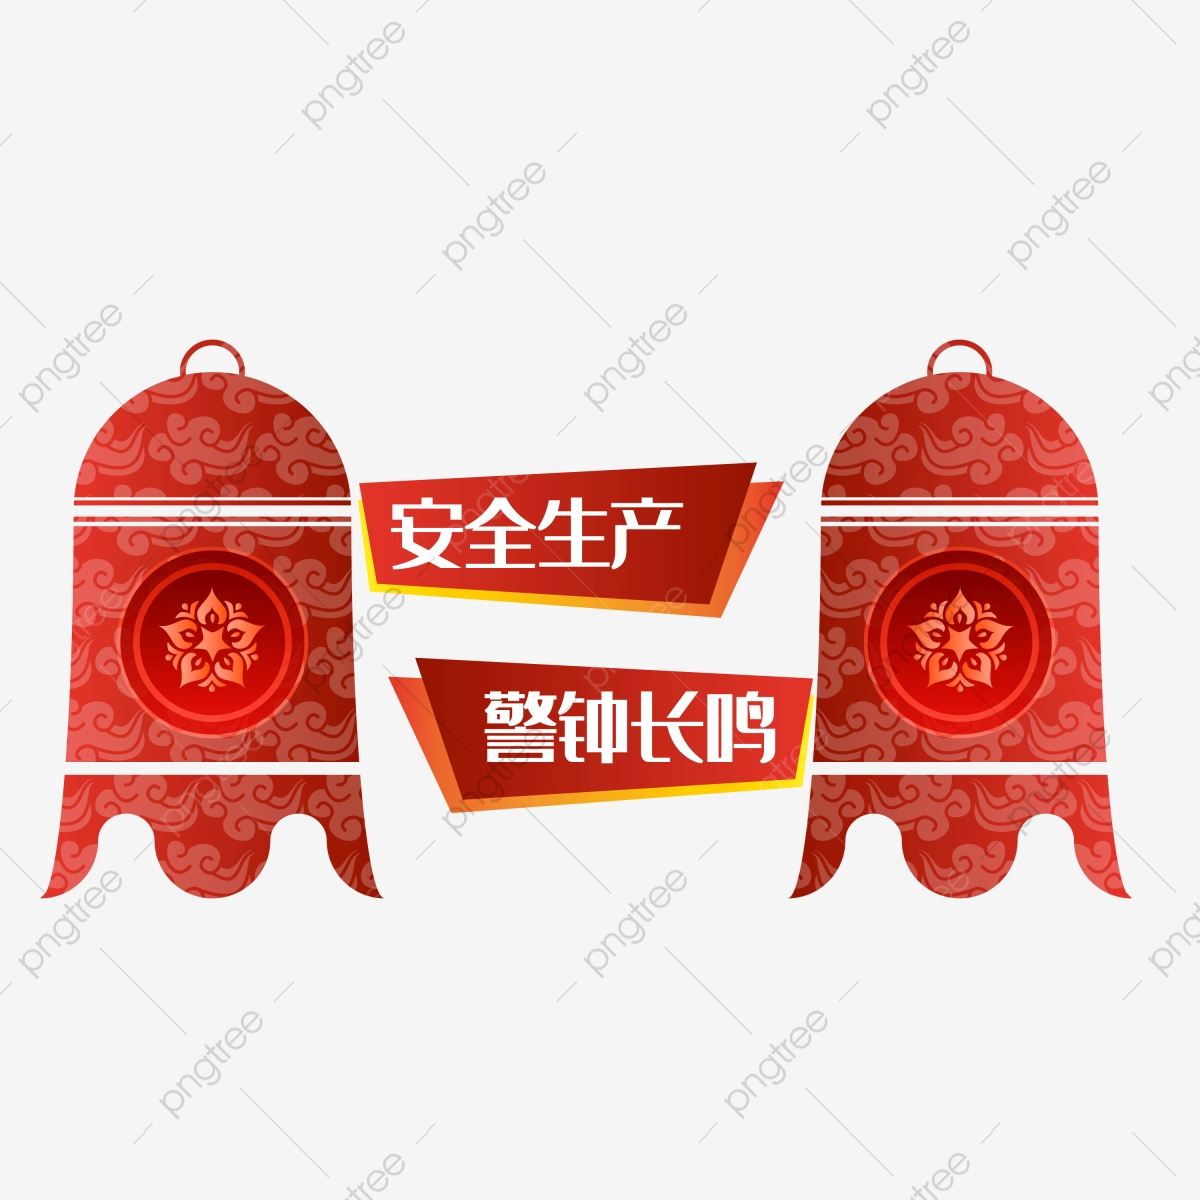 Alarm Bell Sounds Safe Productionsafety Production Safety First Safety Production Safety First Png And Vector With Transparent Background For Free Download